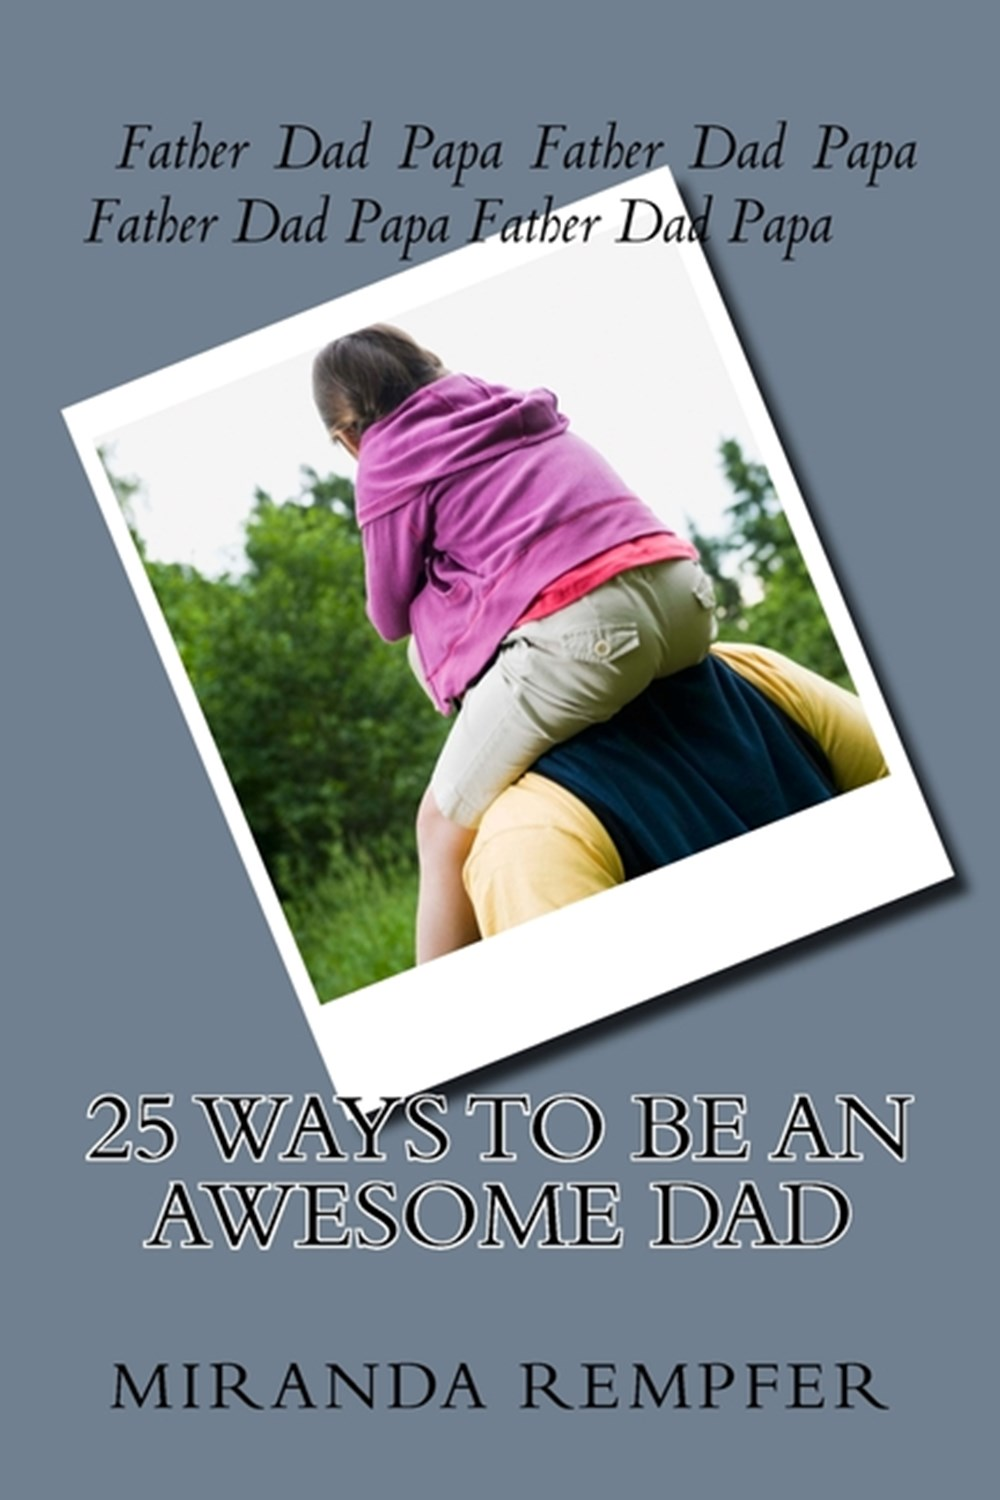 25 ways to be an AWESOME dad